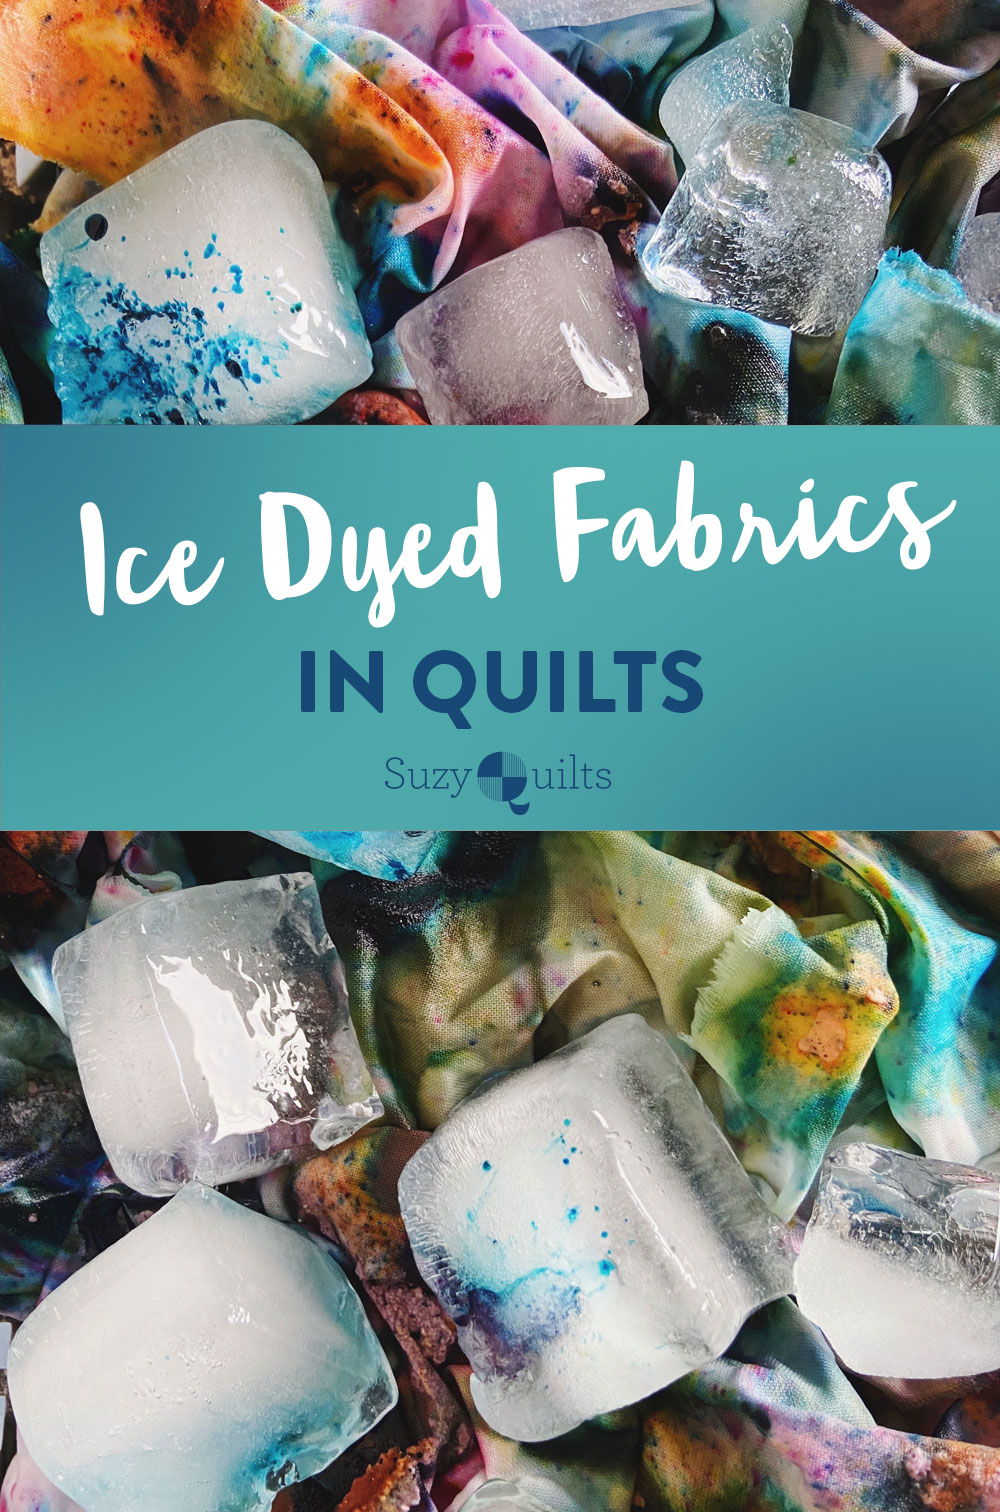 Learn all about ice dyeing from professional hand dyer Brooke Biette, who shares tips for using ice dyed fabrics in quilts, how to care for ice dyed fabrics, and what inspires her hand dye quilting fabric. suzyquilts.com #sewingdiy #quilting